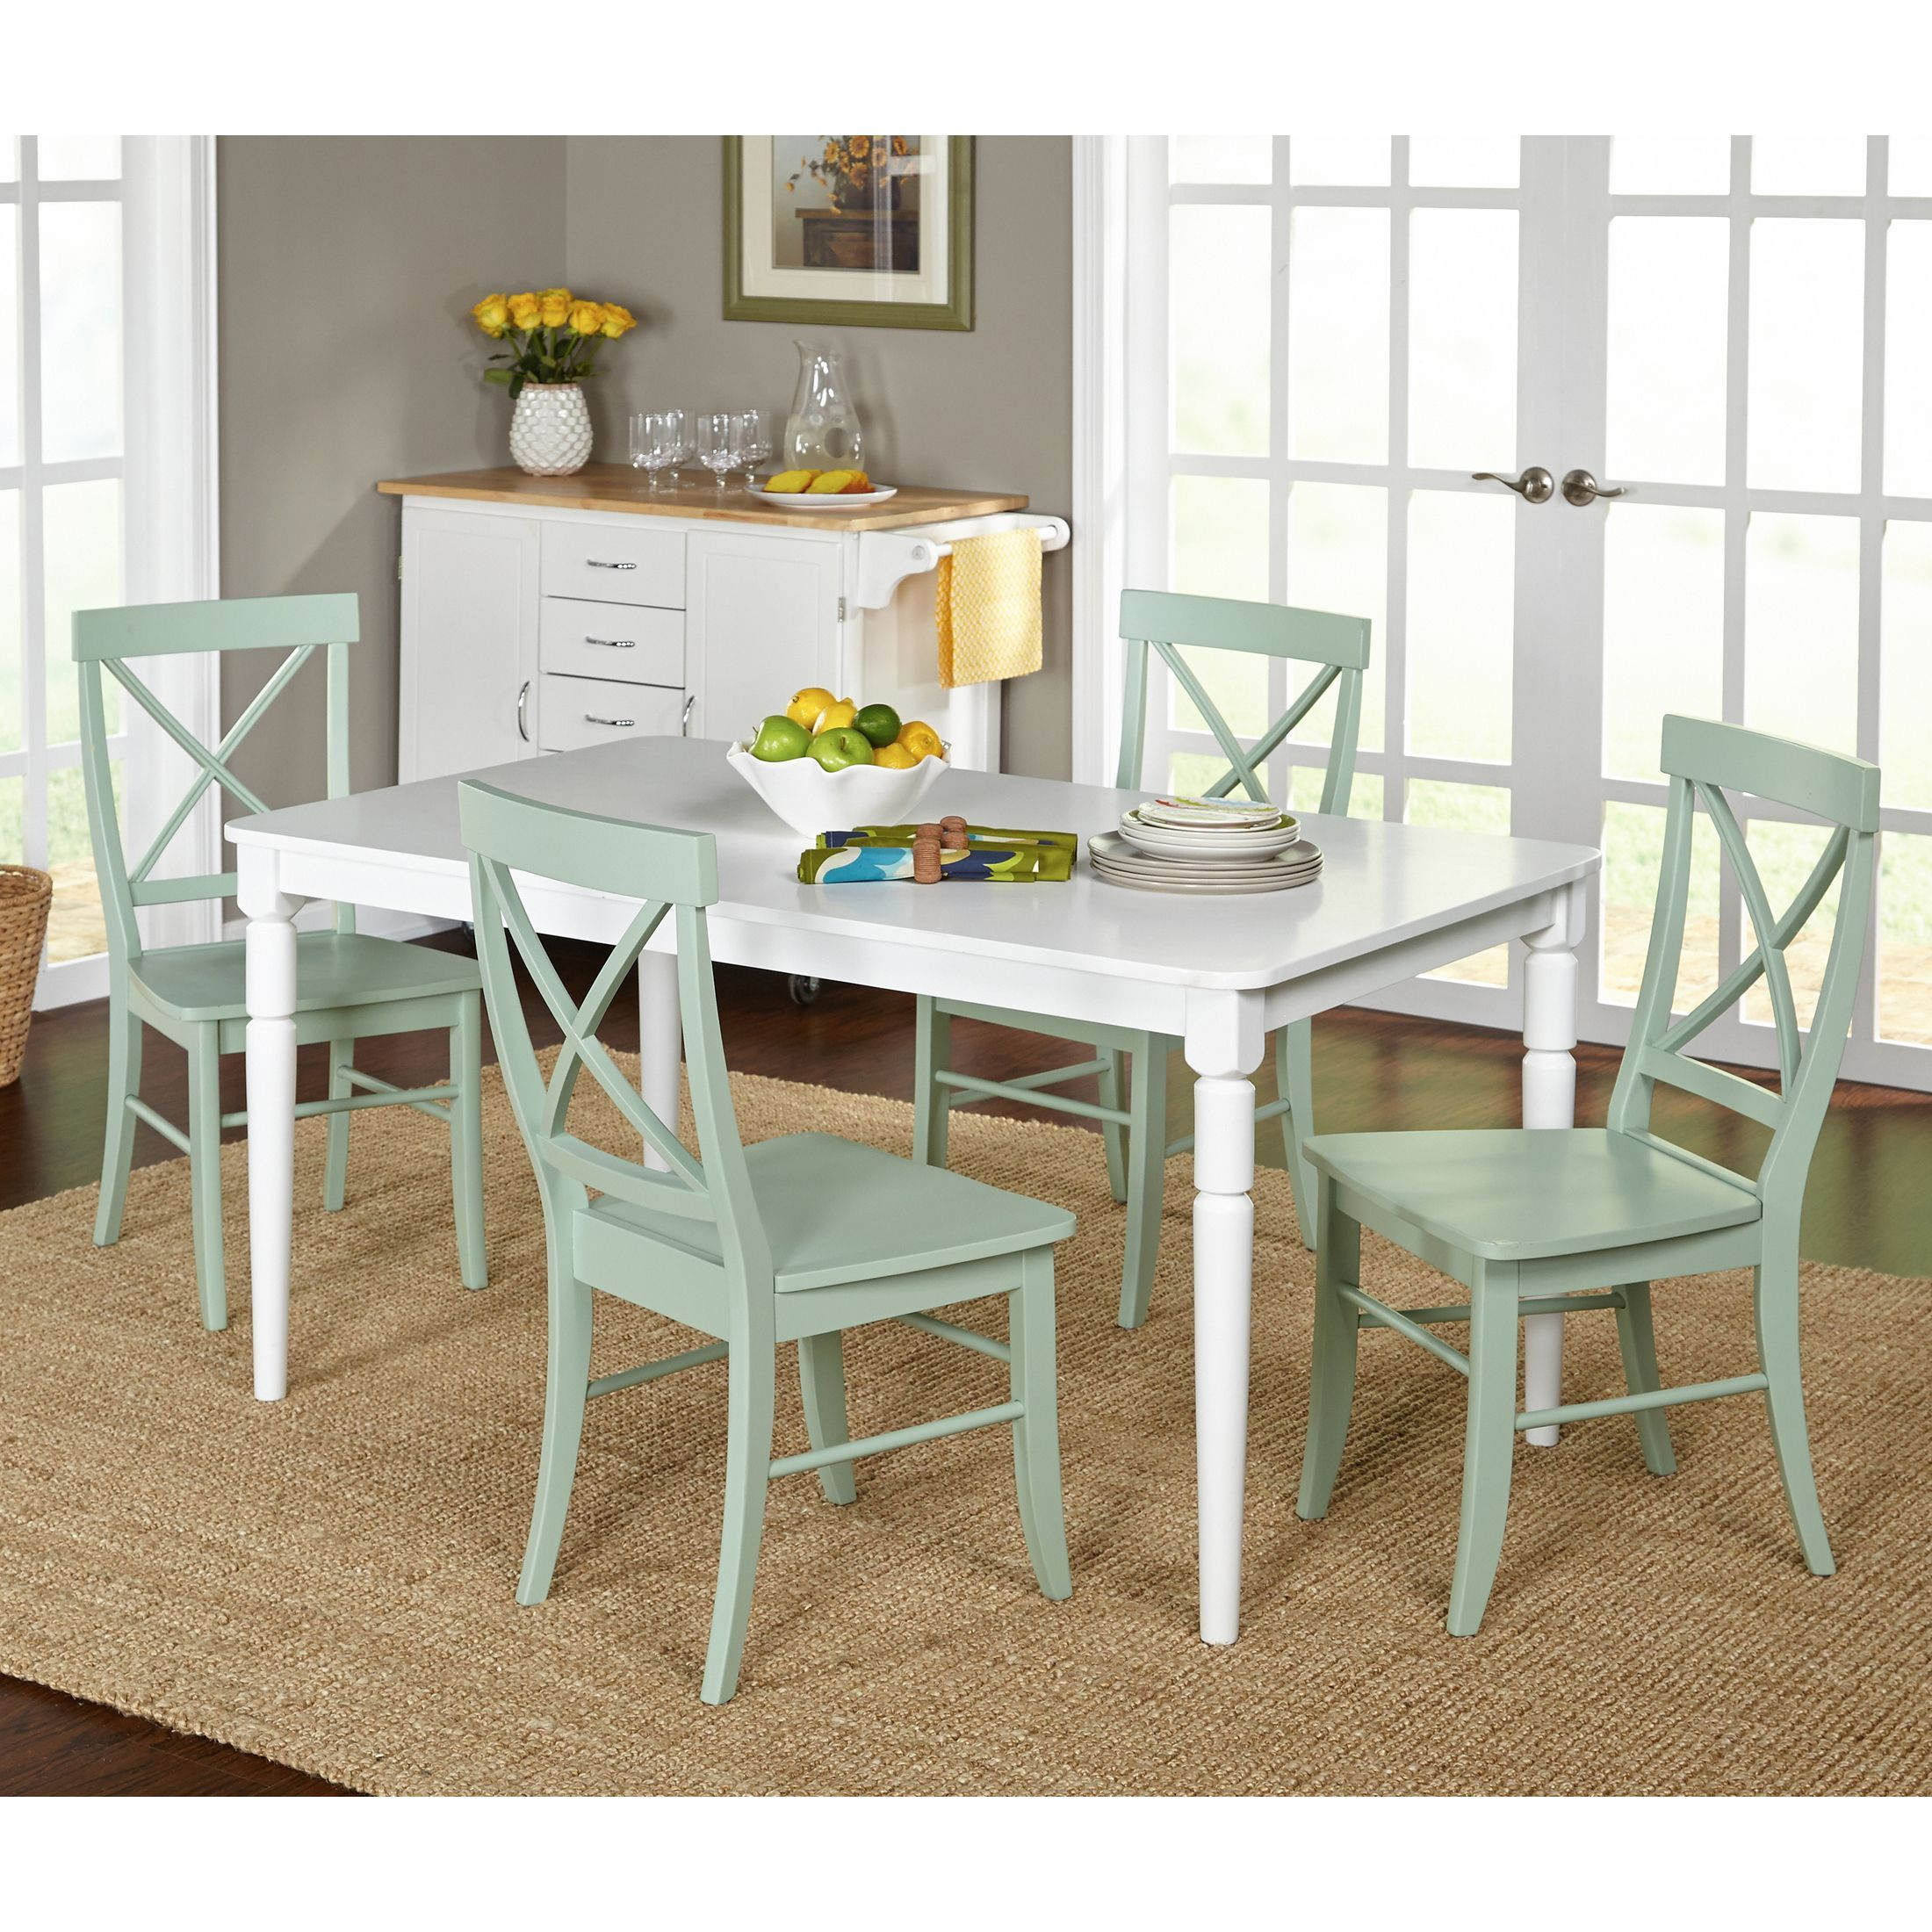 The Albury 5 Piece Dining Setsimple Living Exudes Country Chic Prepossessing Simple Dining Room 2018